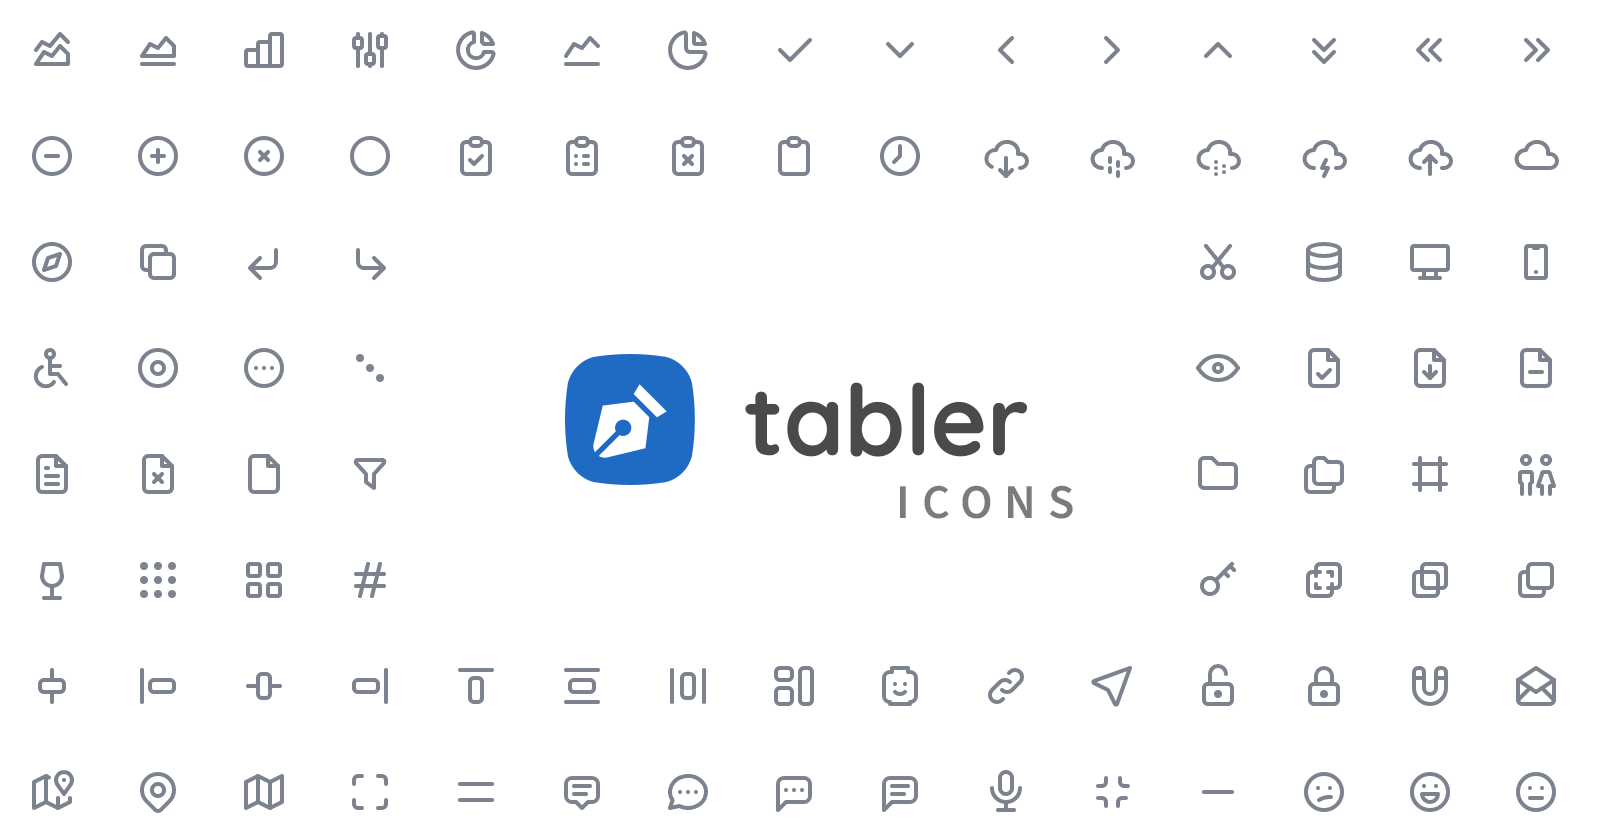 tabler-icons